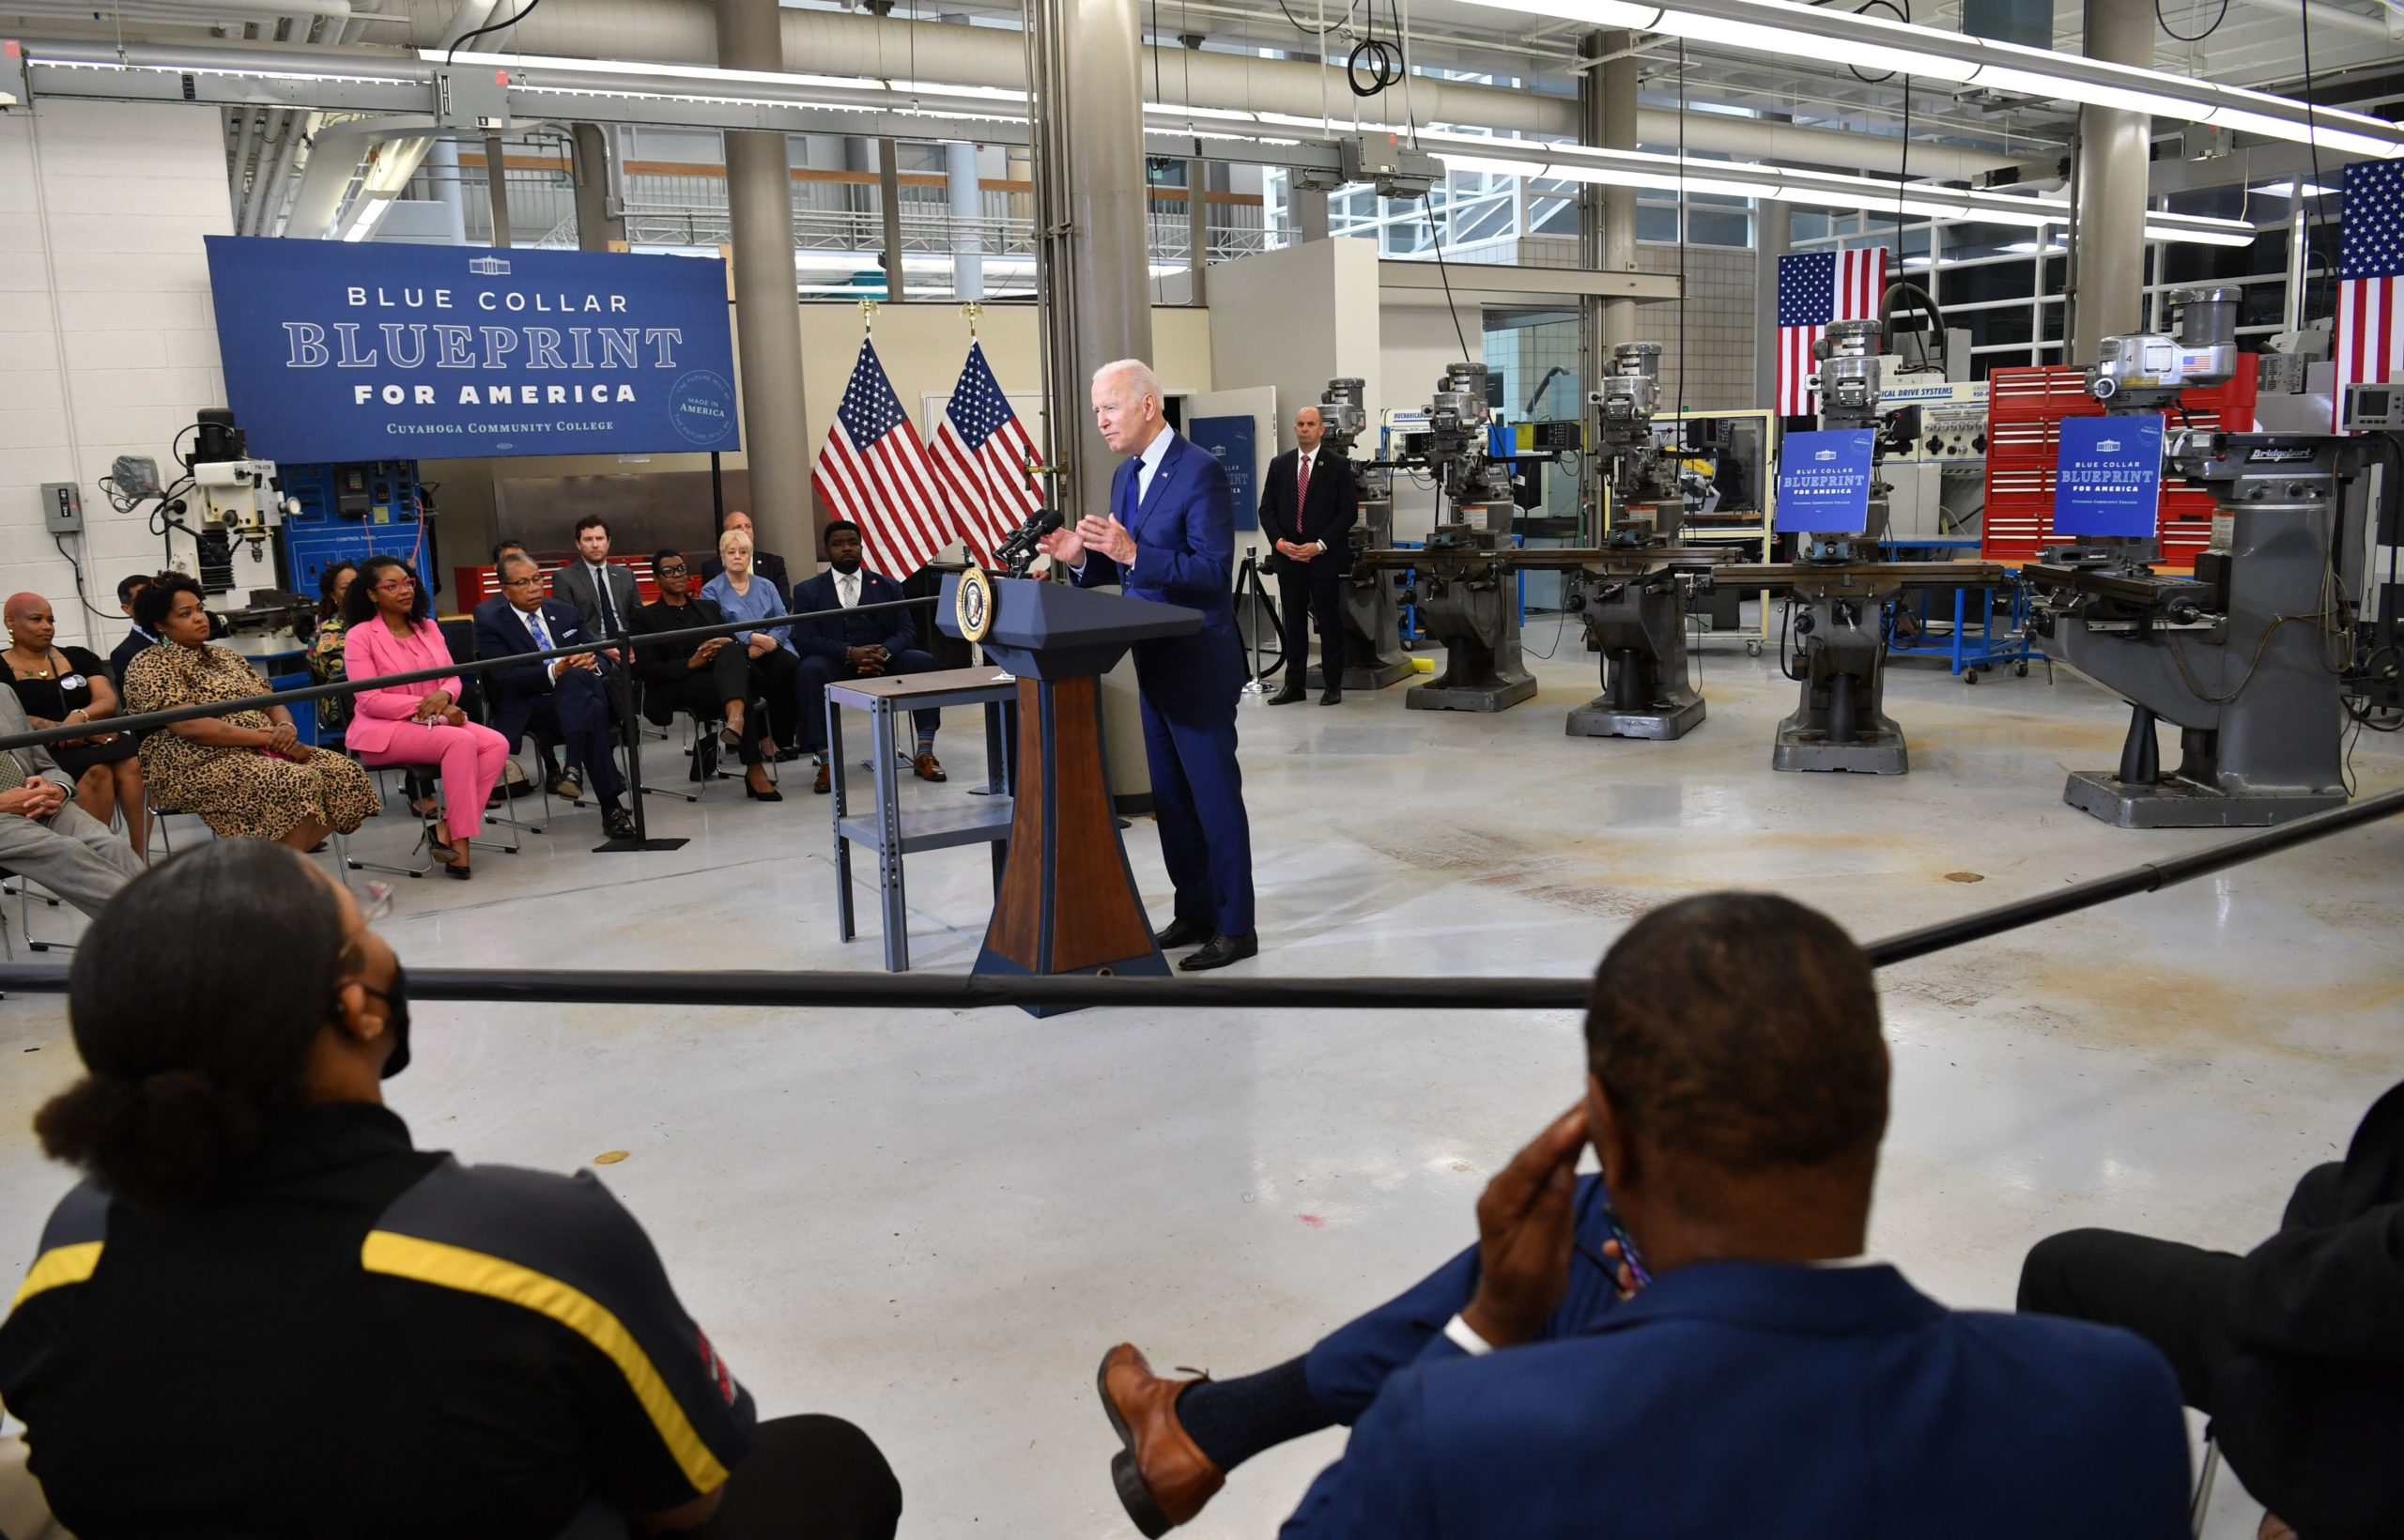 President Joe Biden speaks about the economy on May 27 in Cleveland, Ohio. (Nicholas Kamm/AFP via Getty Images)